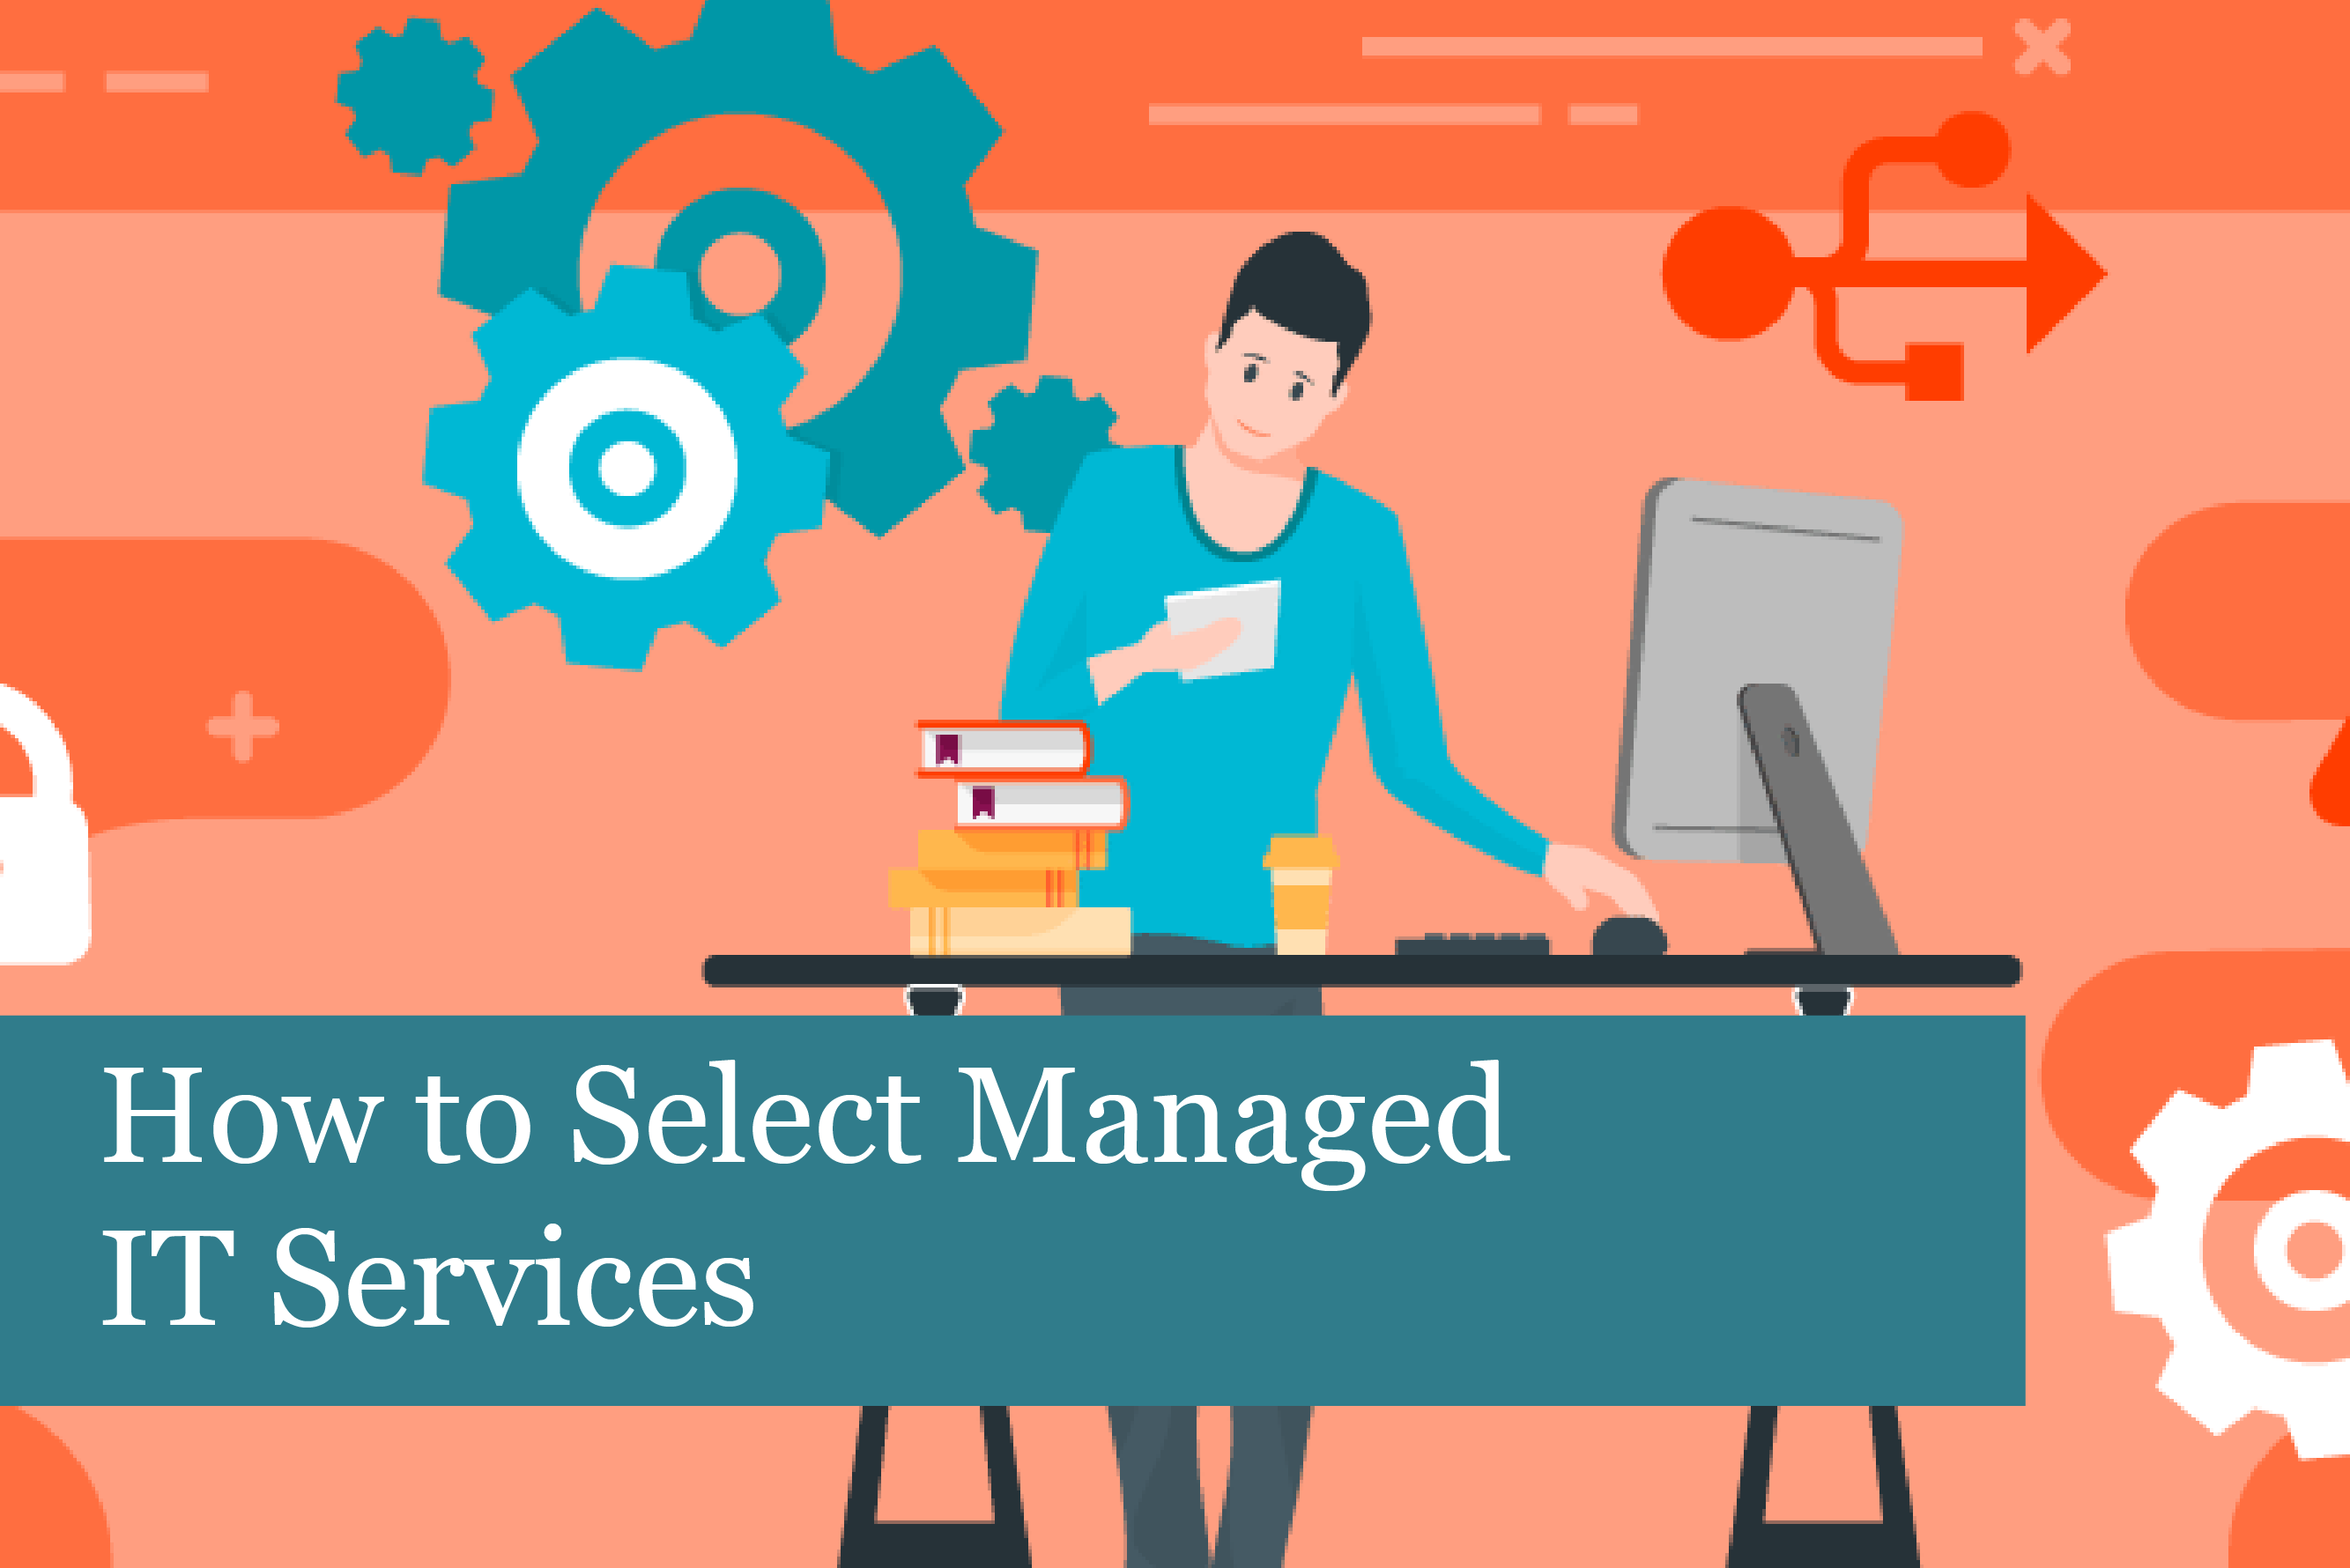 How to Select Managed IT Services